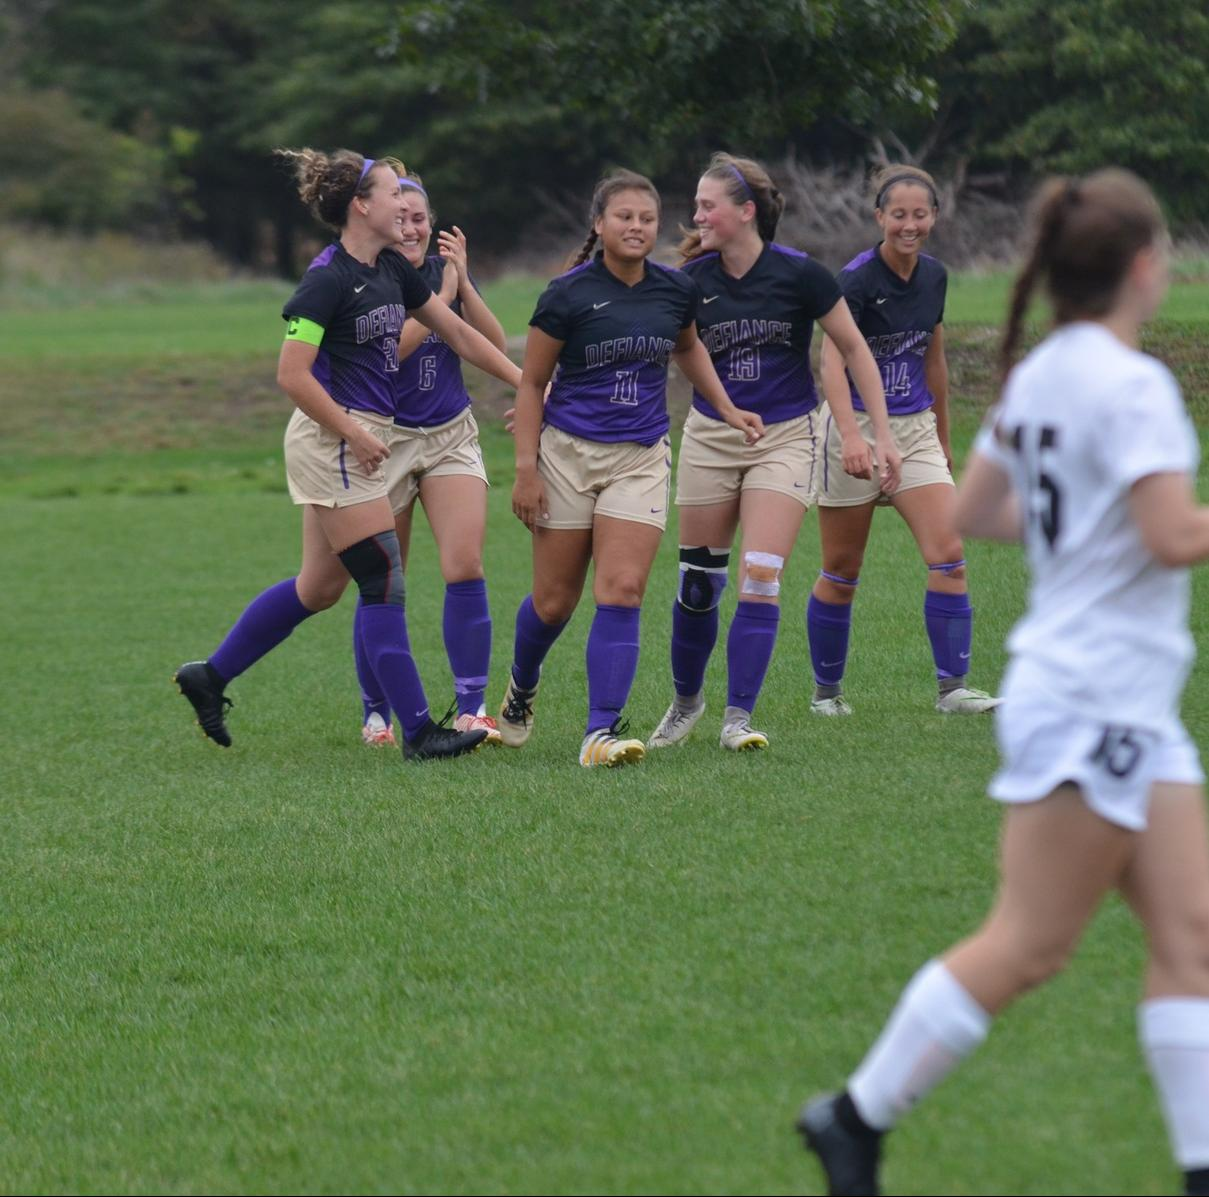 Women's Soccer Wins in Thrilling Fashion